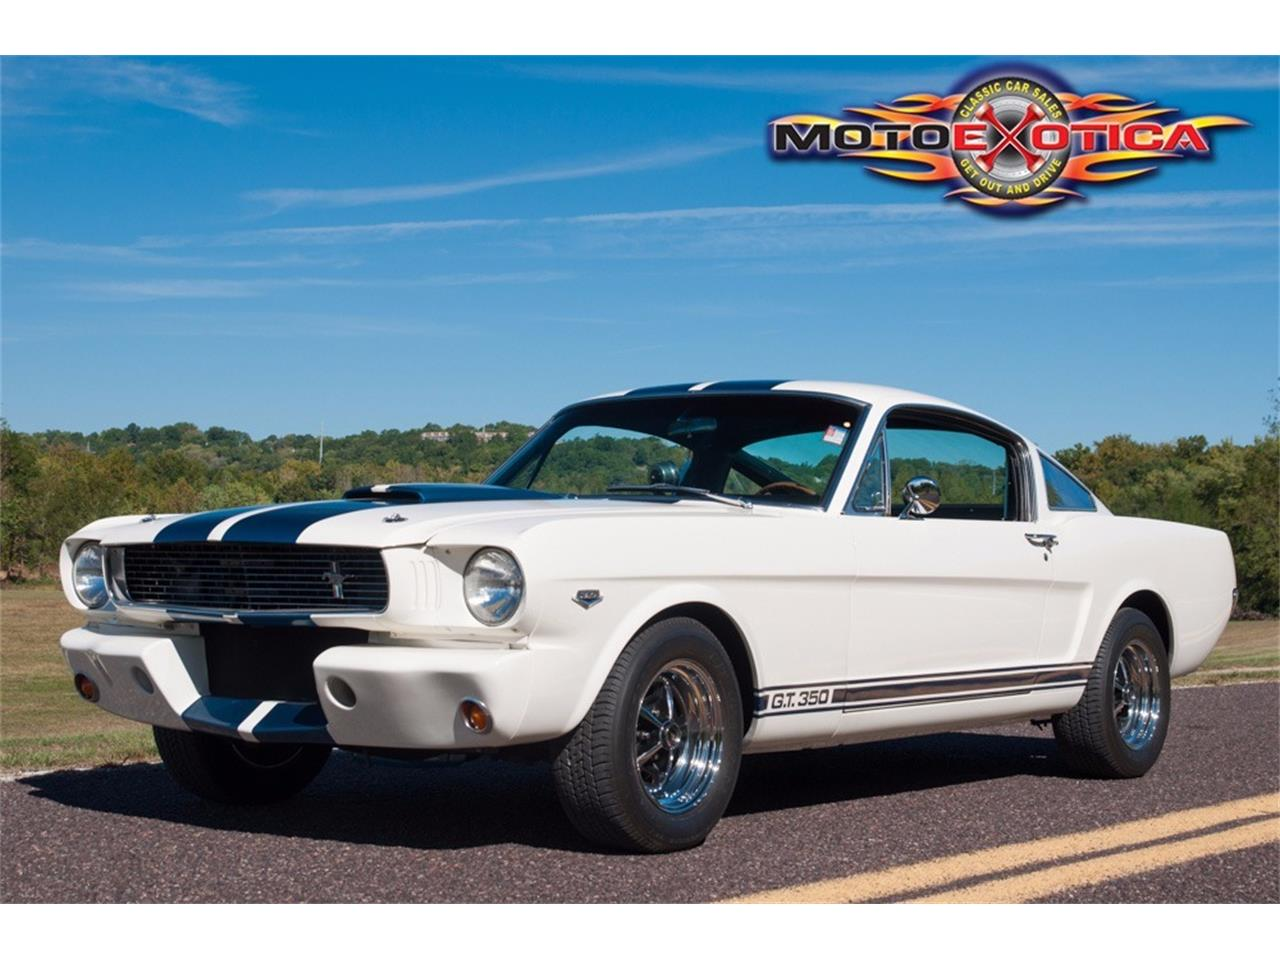 St Louis Ford Dealers >> 1966 Ford Mustang Shelby GT350 for Sale | ClassicCars.com | CC-1028263